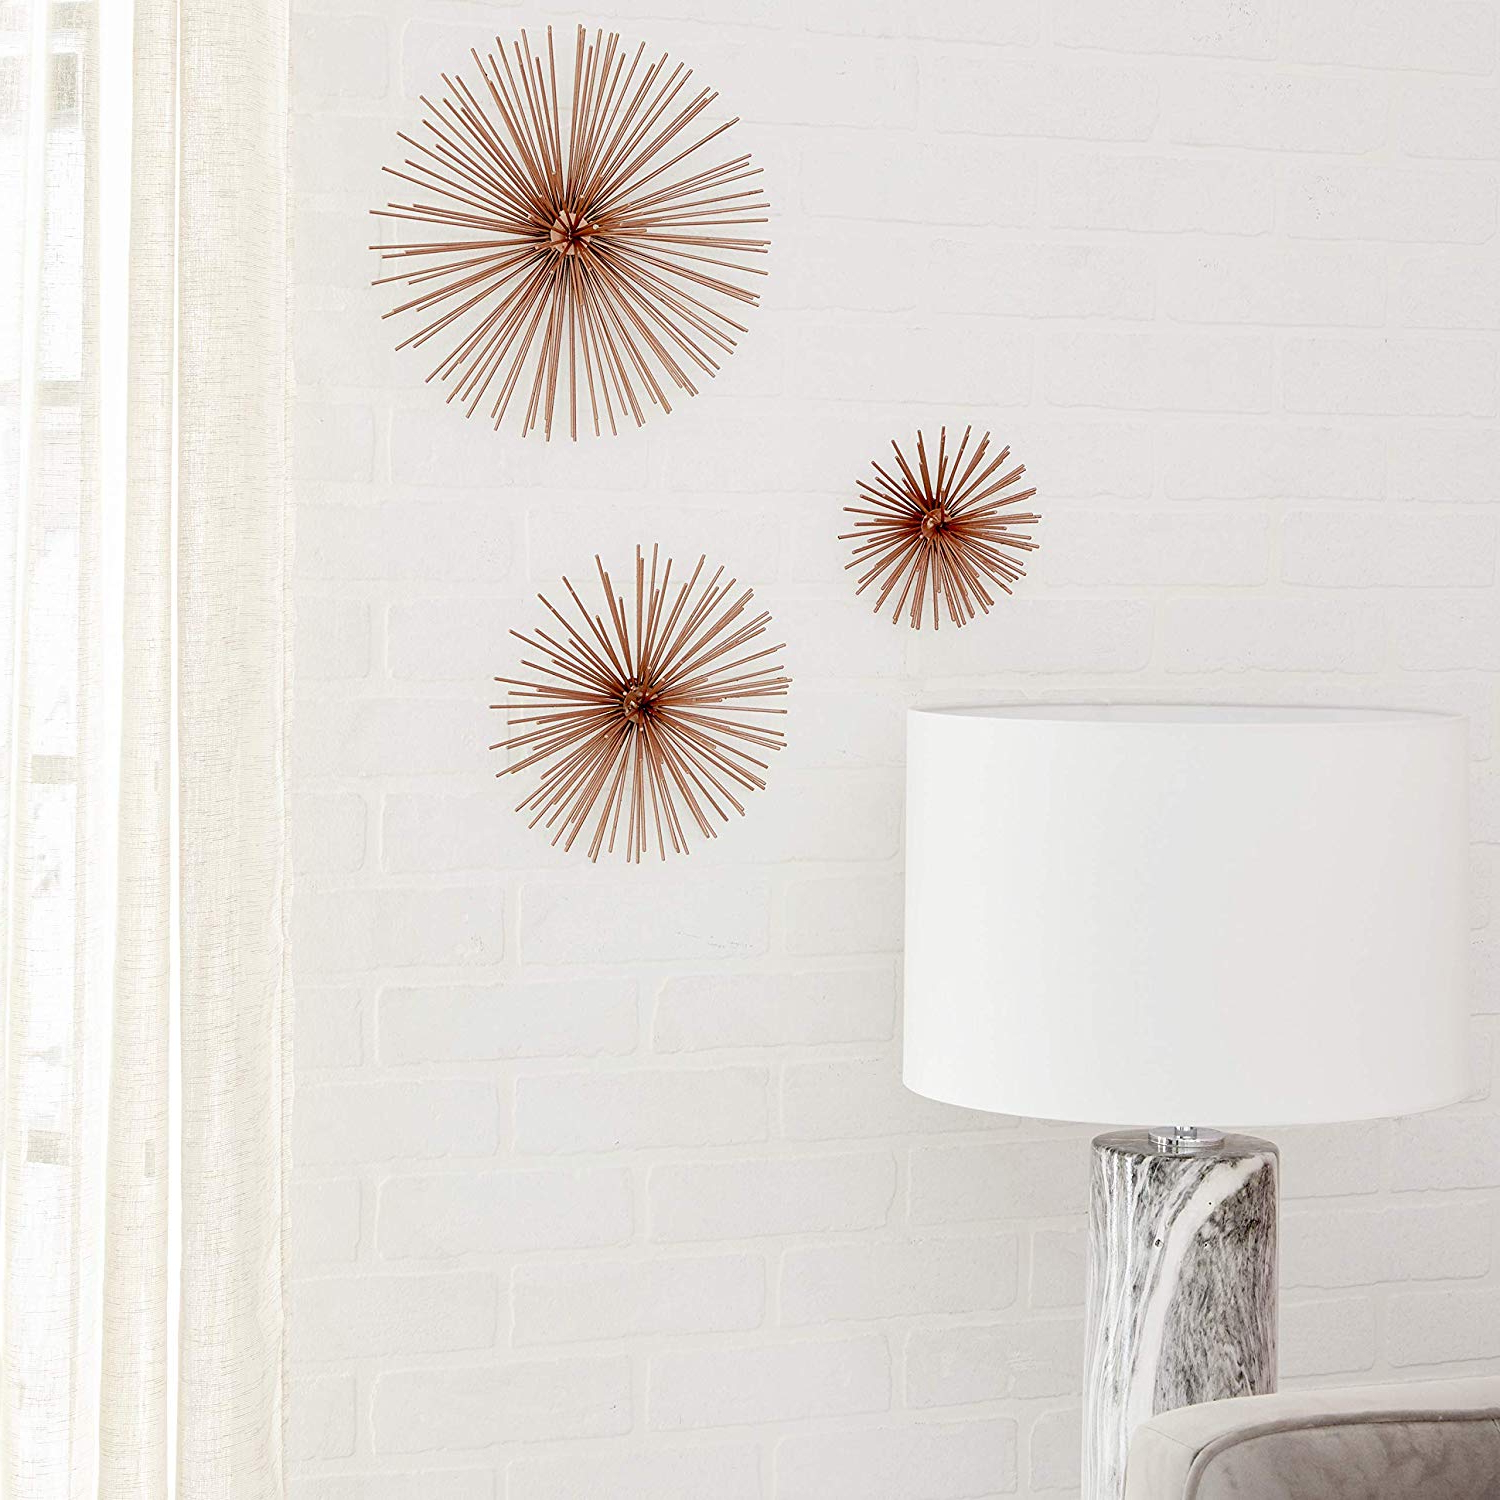 Amazon: Deco 79 50373 Contemporary Style 3D Round Copper Metal Pertaining To Most Up To Date 2 Piece Starburst Wall Decor Sets (View 5 of 20)